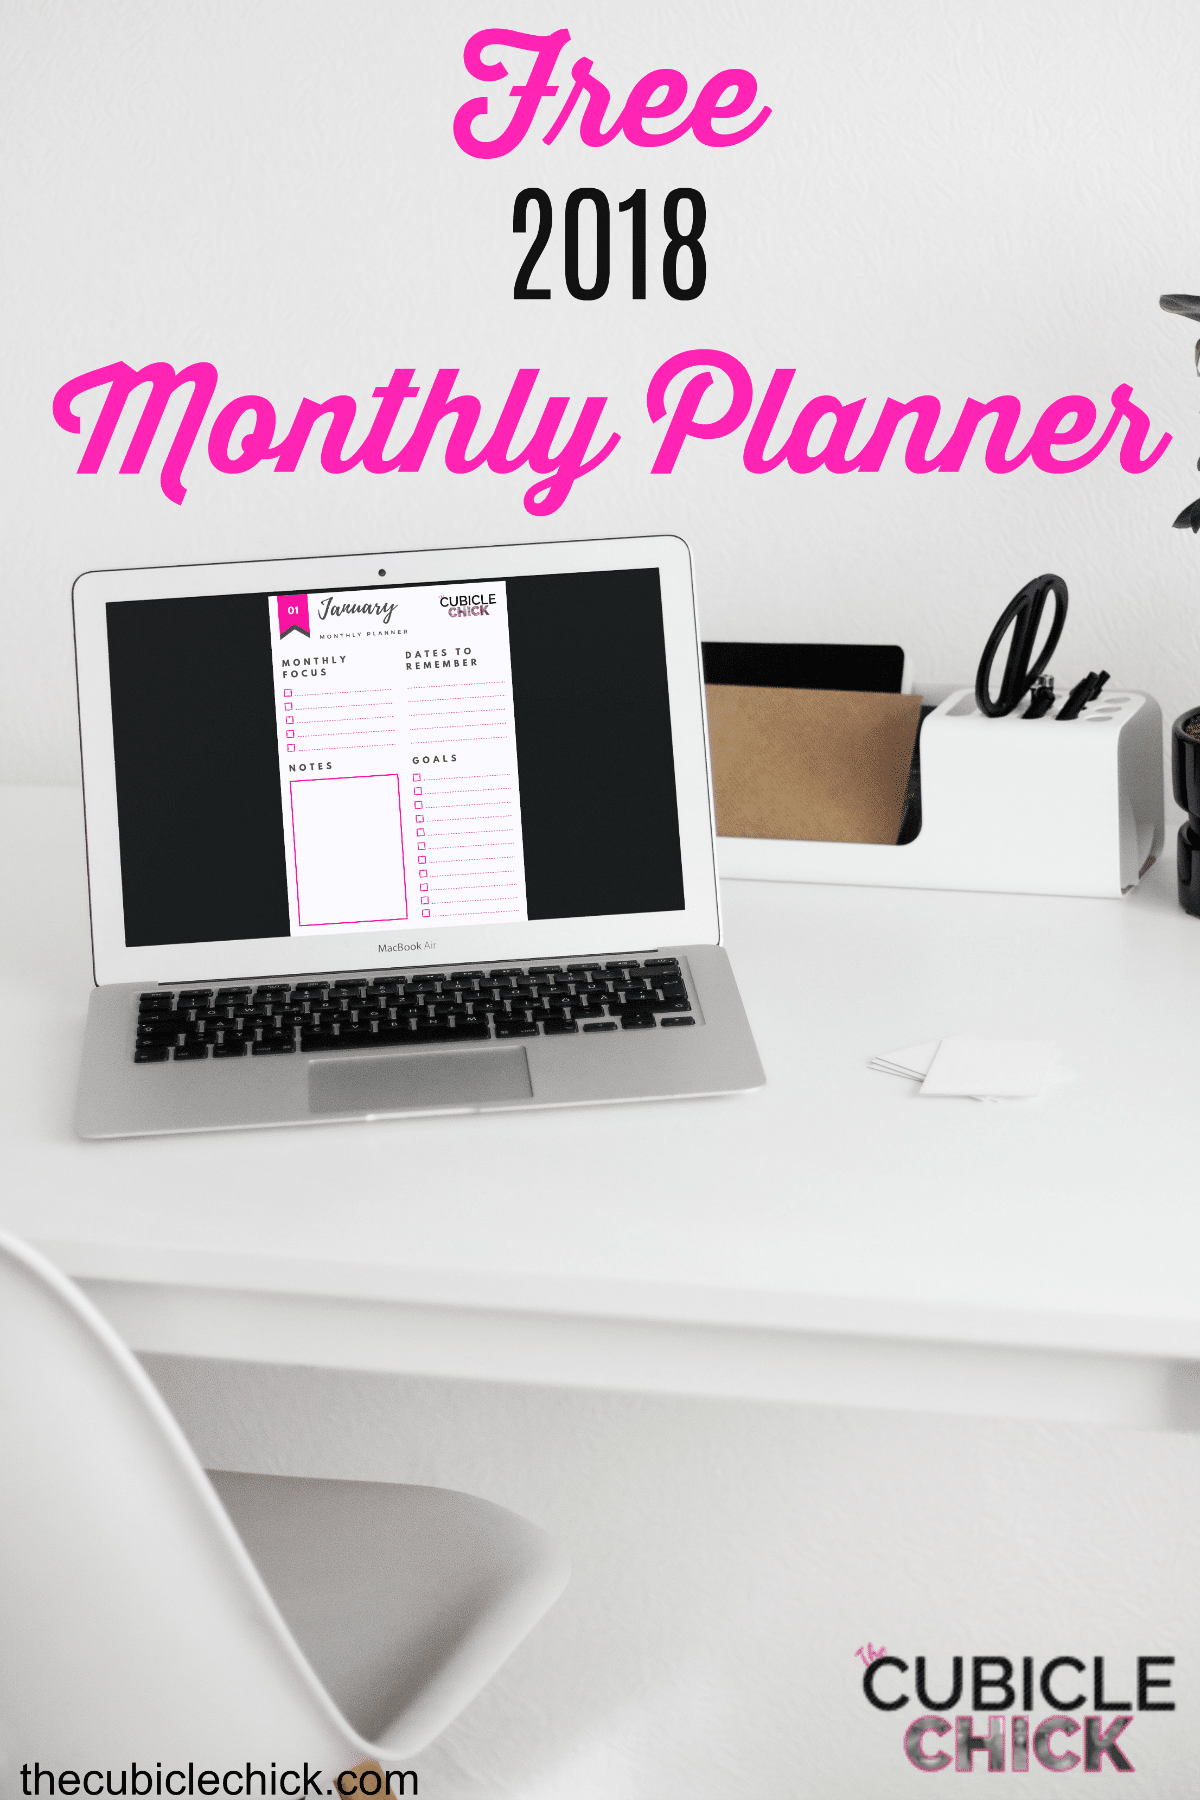 It's never too early to begin planning your takeover for the new year. Download my free 2018 Monthly Planner and get a jumpstart on the new year.